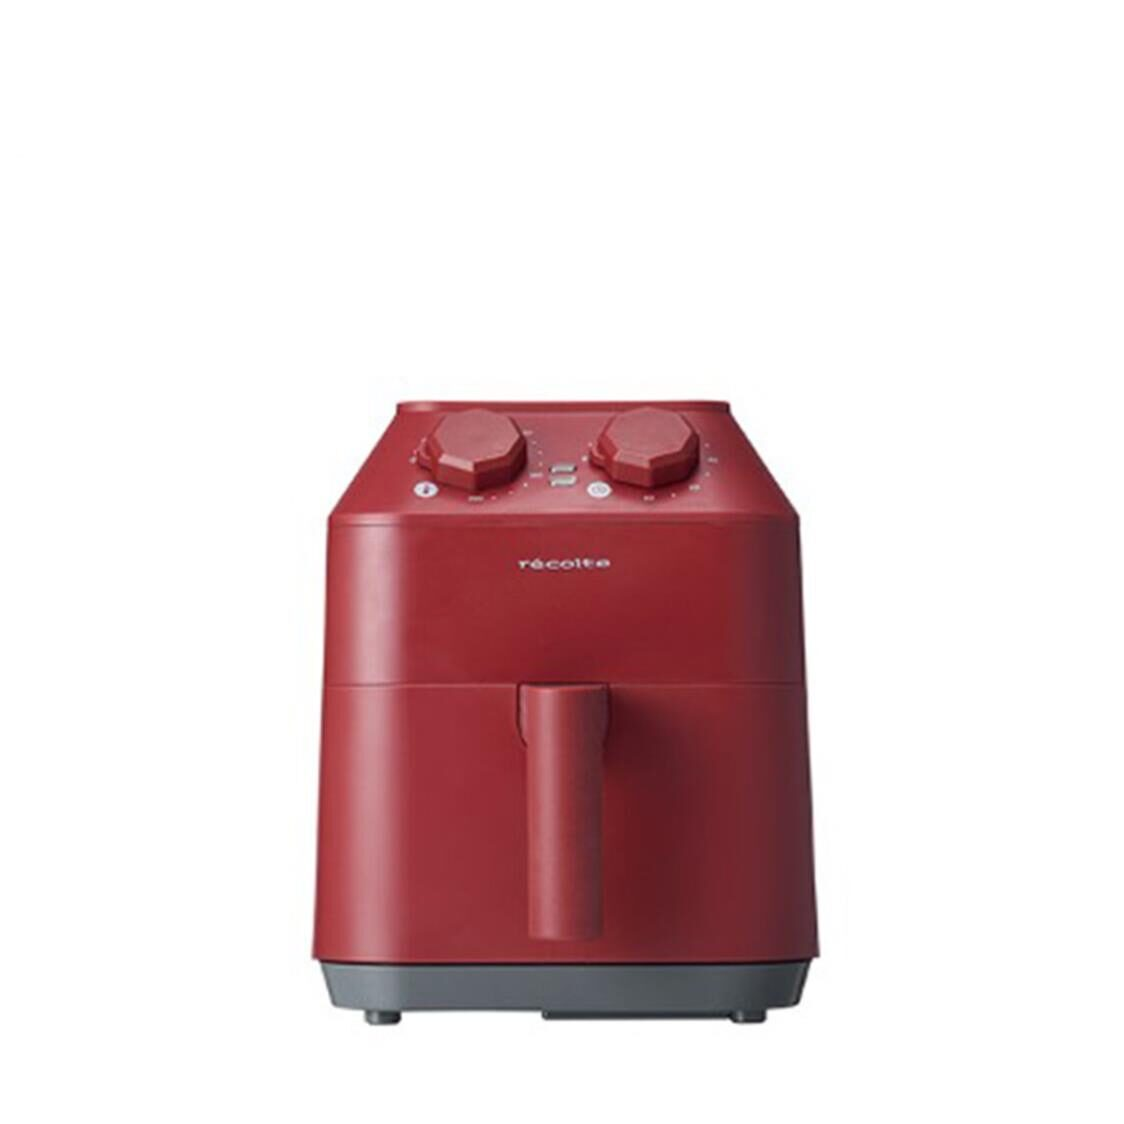 Recolte Air Oven Red